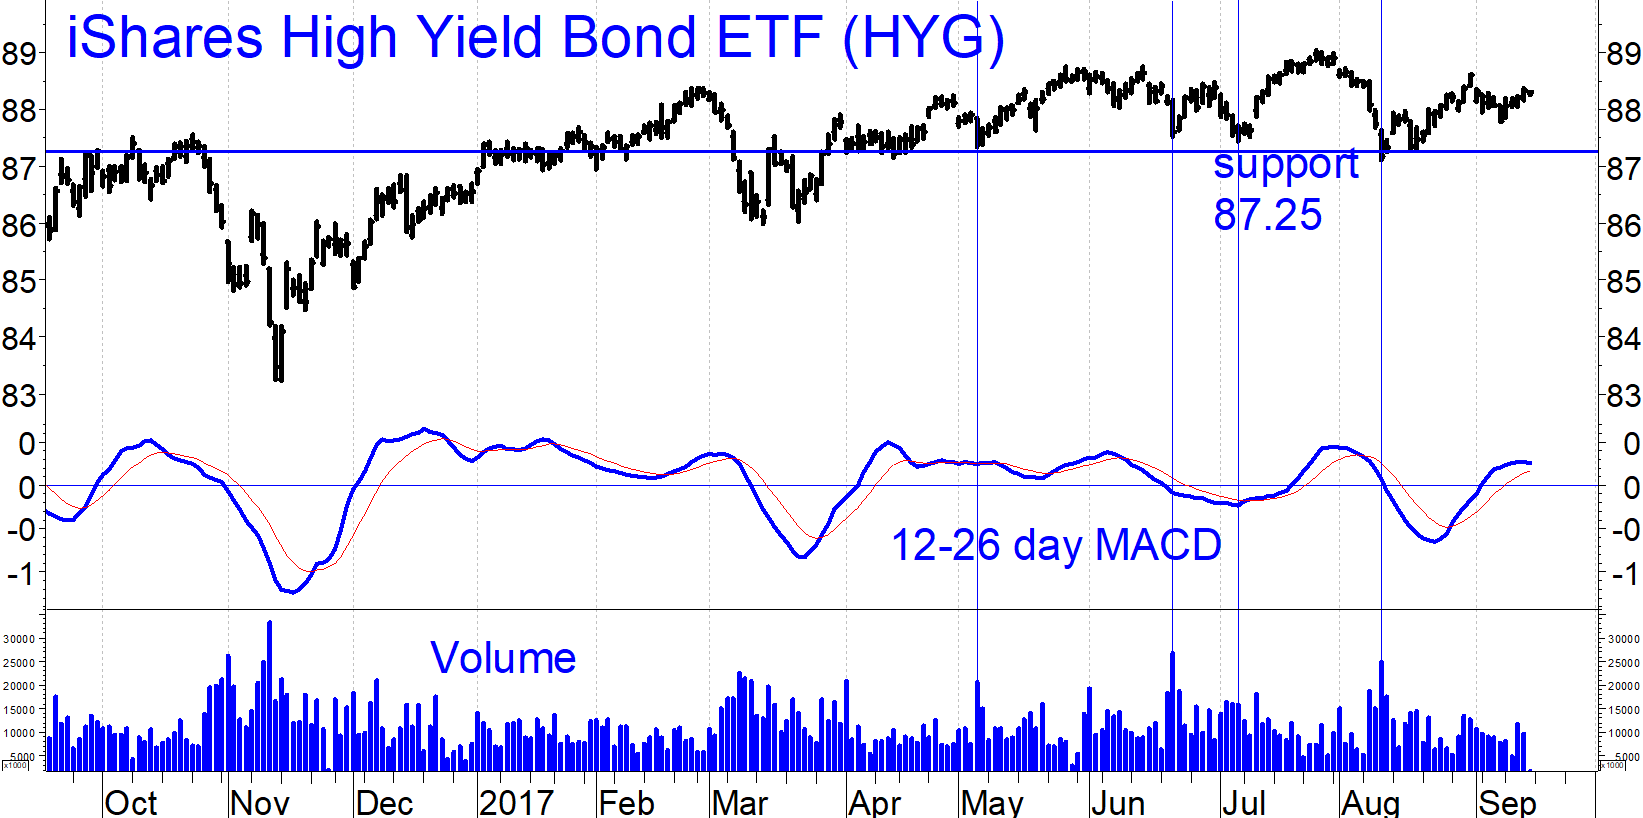 Predicting Bonds with Stocks: A Strategy to Improve Timing in Corporate and High Yield Bonds